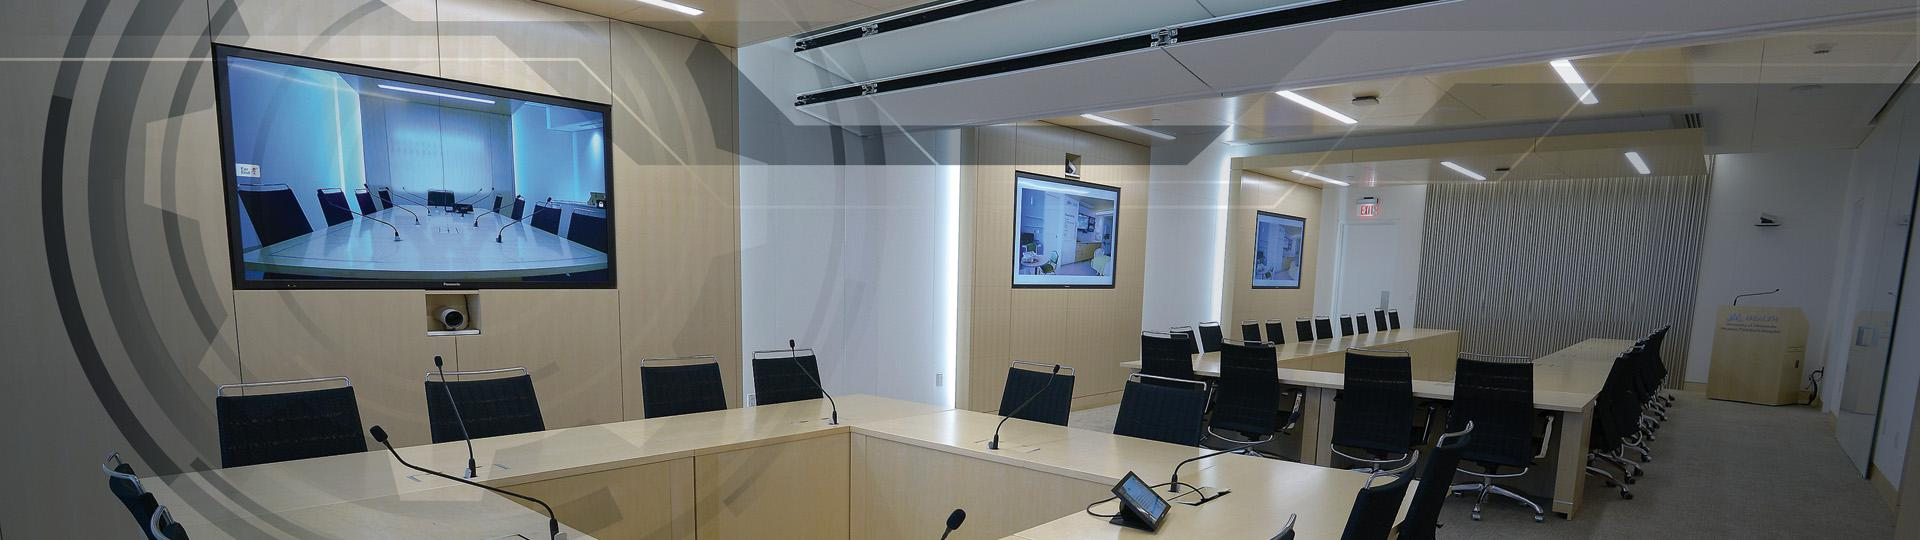 Innovative & cost effective AV solutions for business